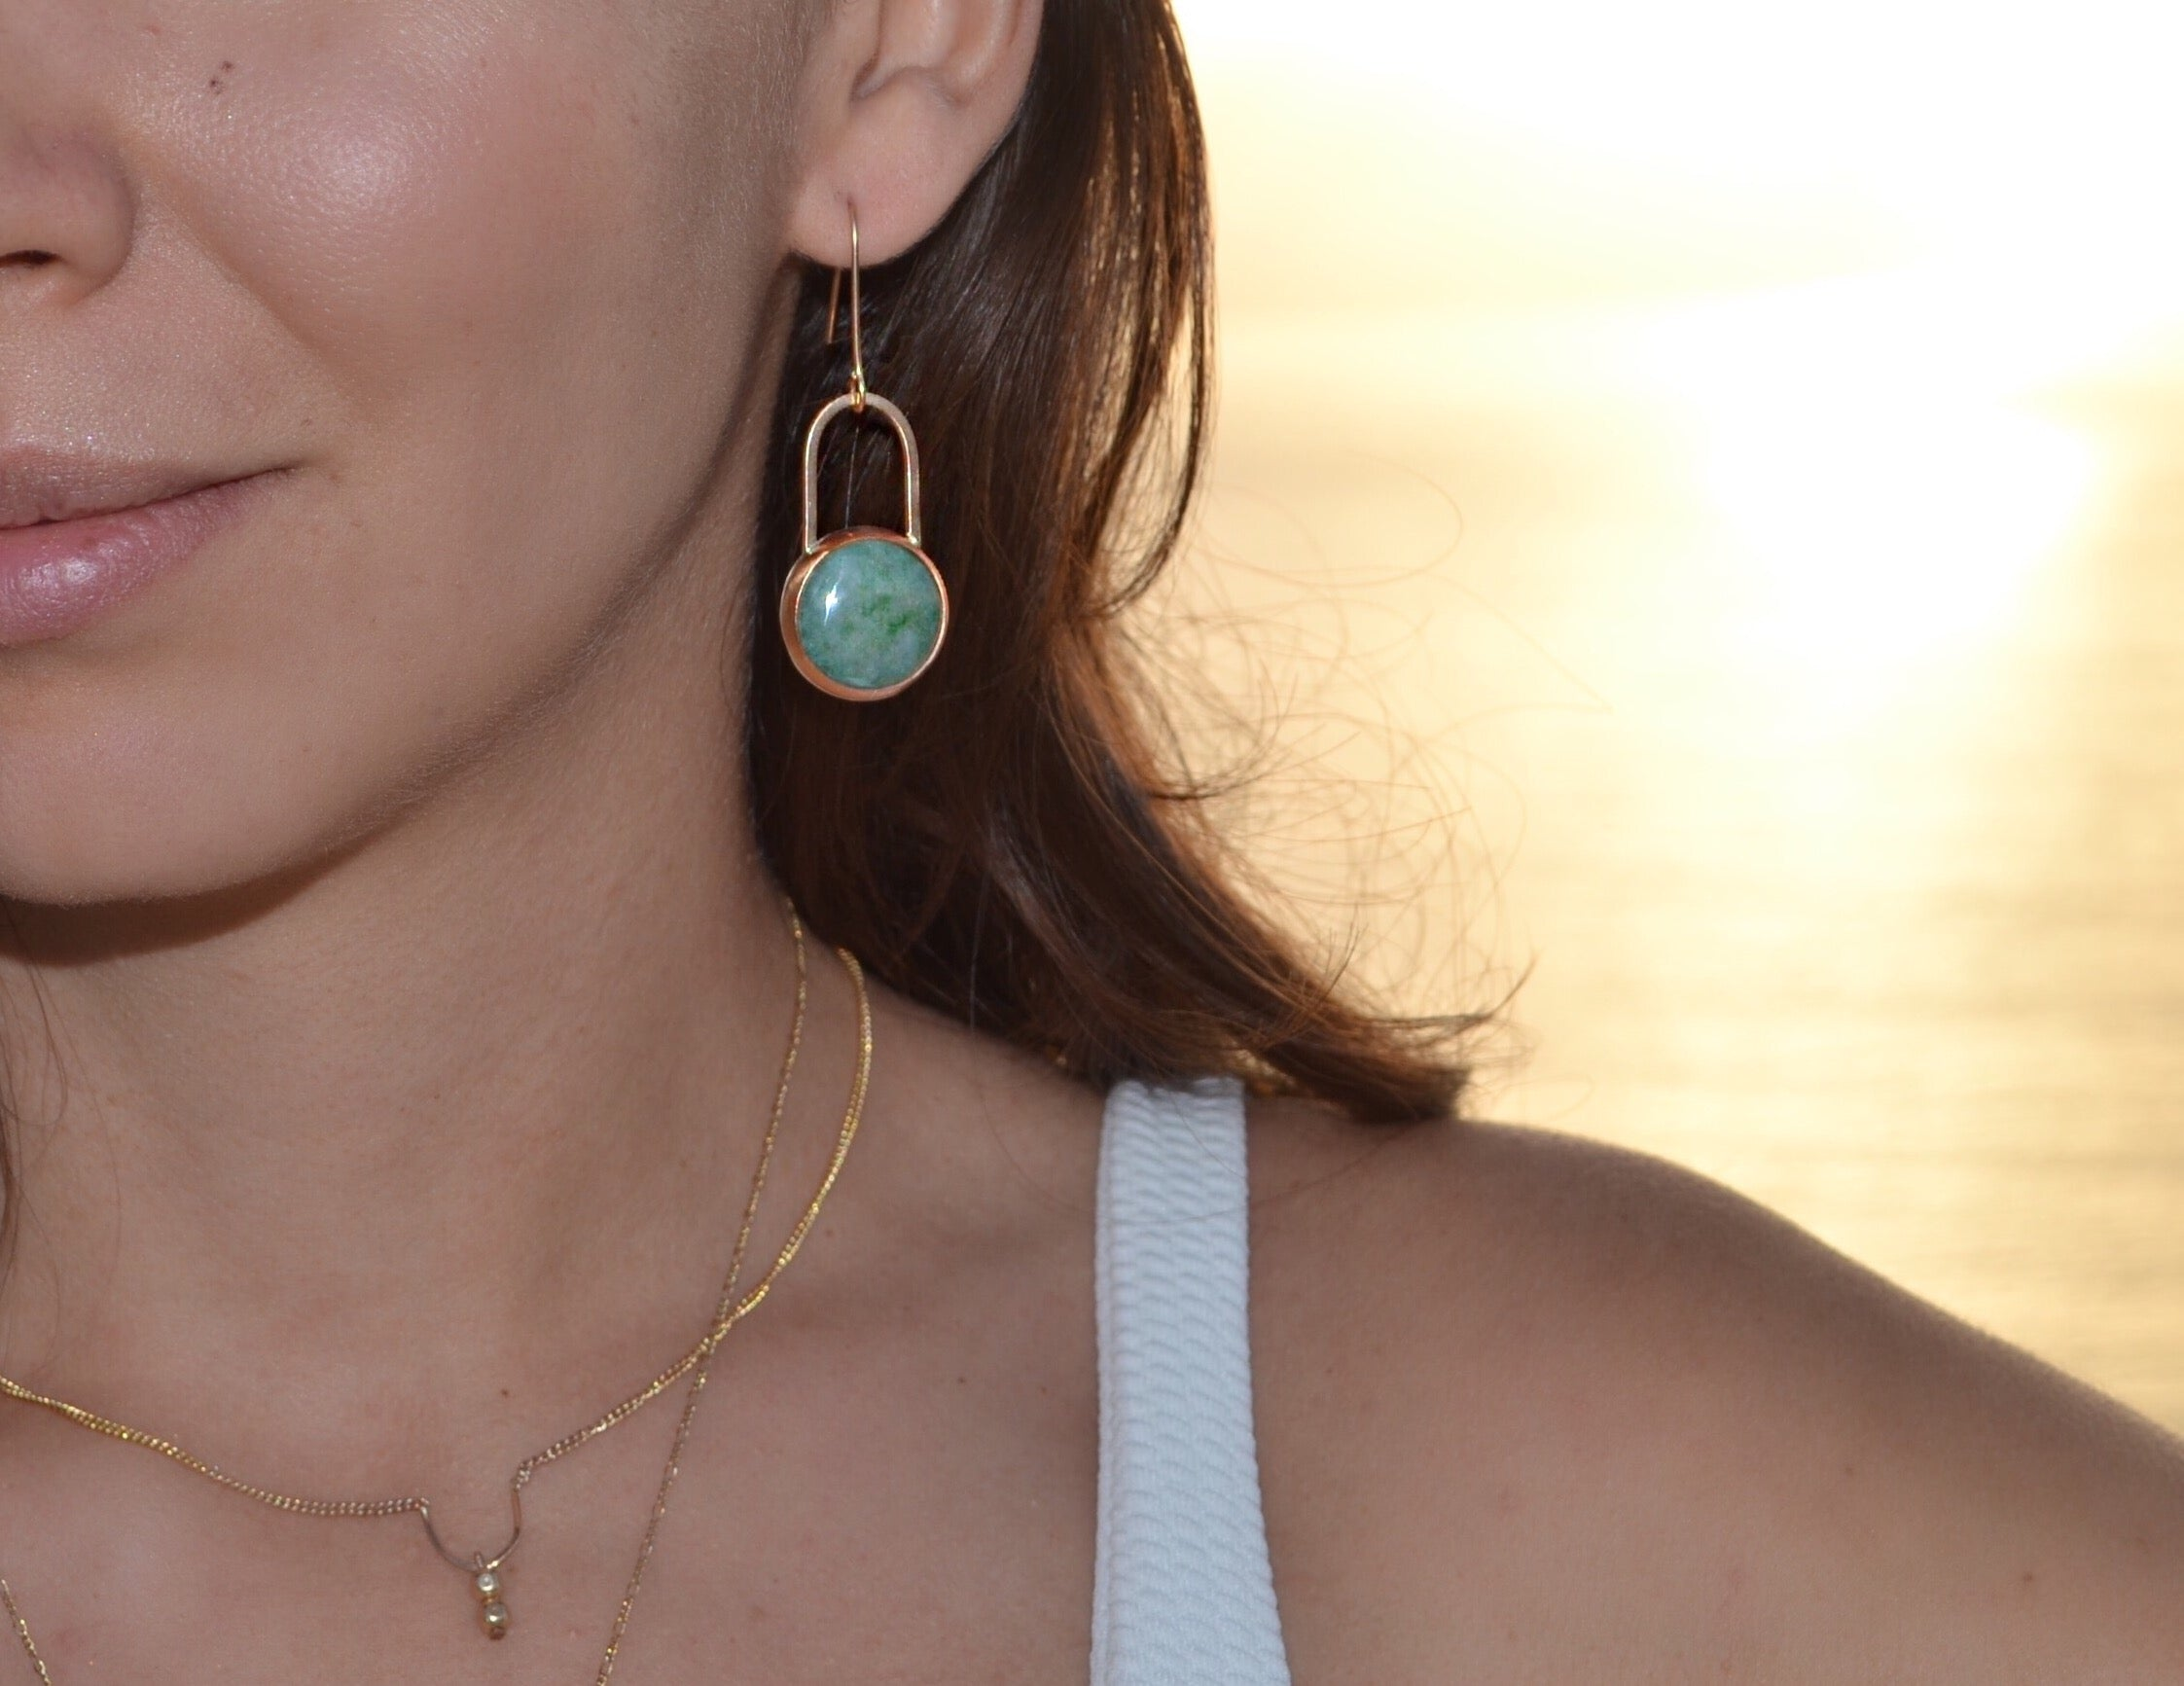 Aventurine earrings, lookbook